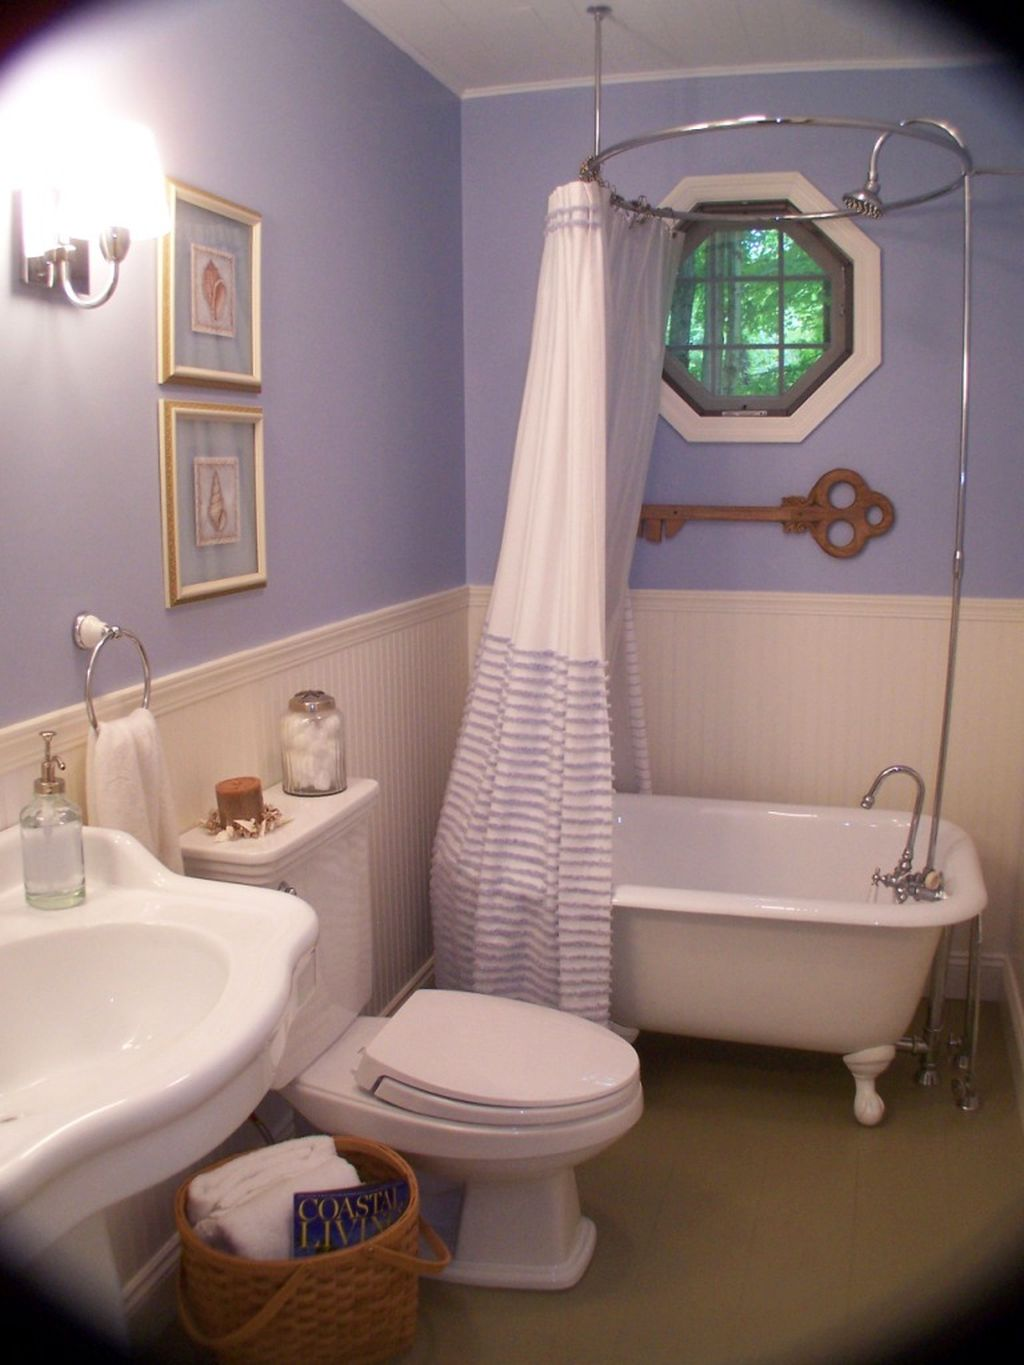 19 bright and inviting tiny bathroom design ideas - Pictures of small bathrooms ...